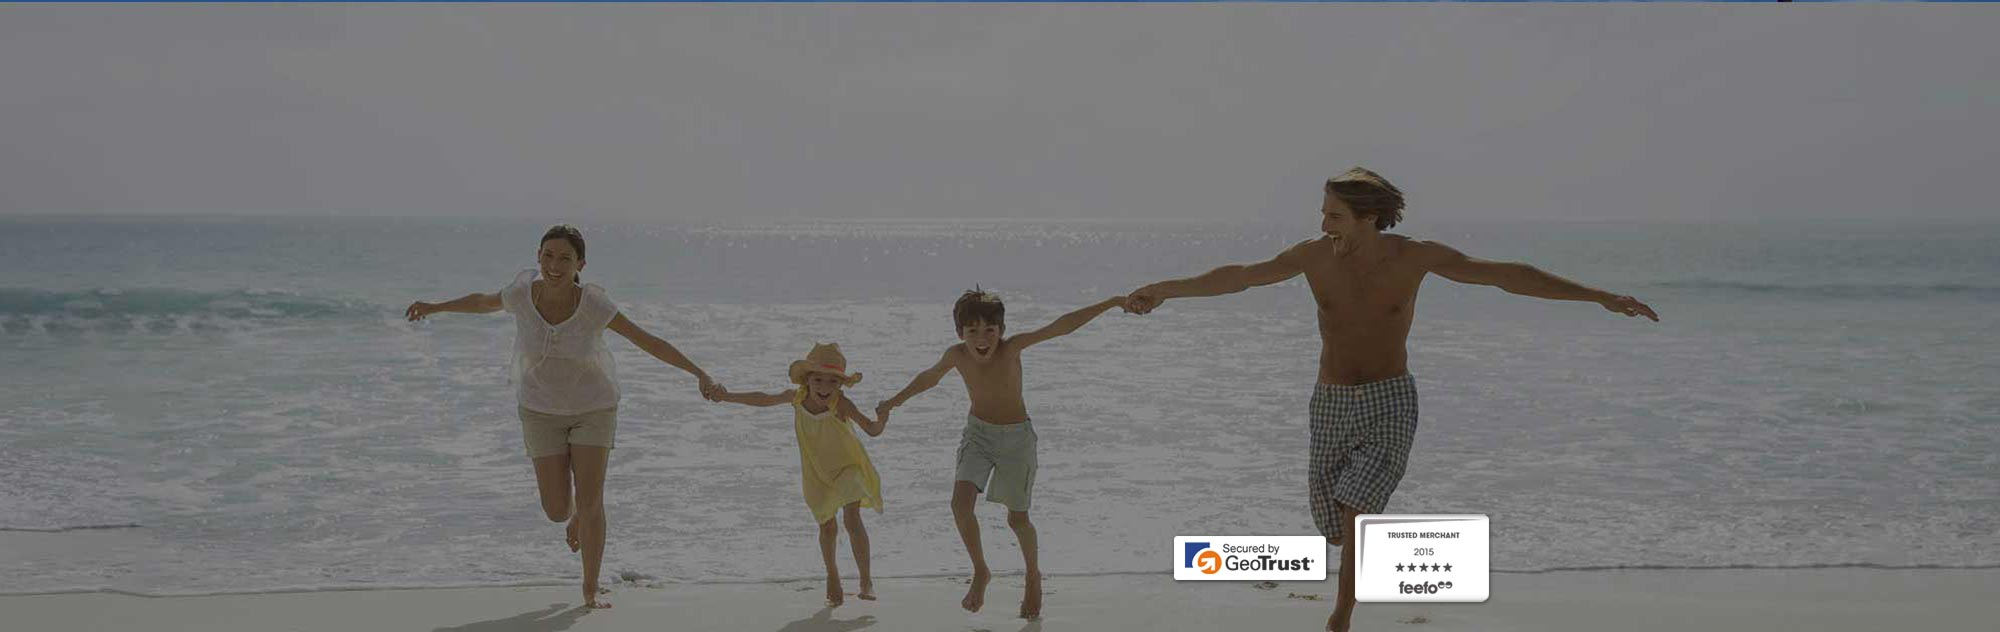 Family Holiday Travel Insurance Banner